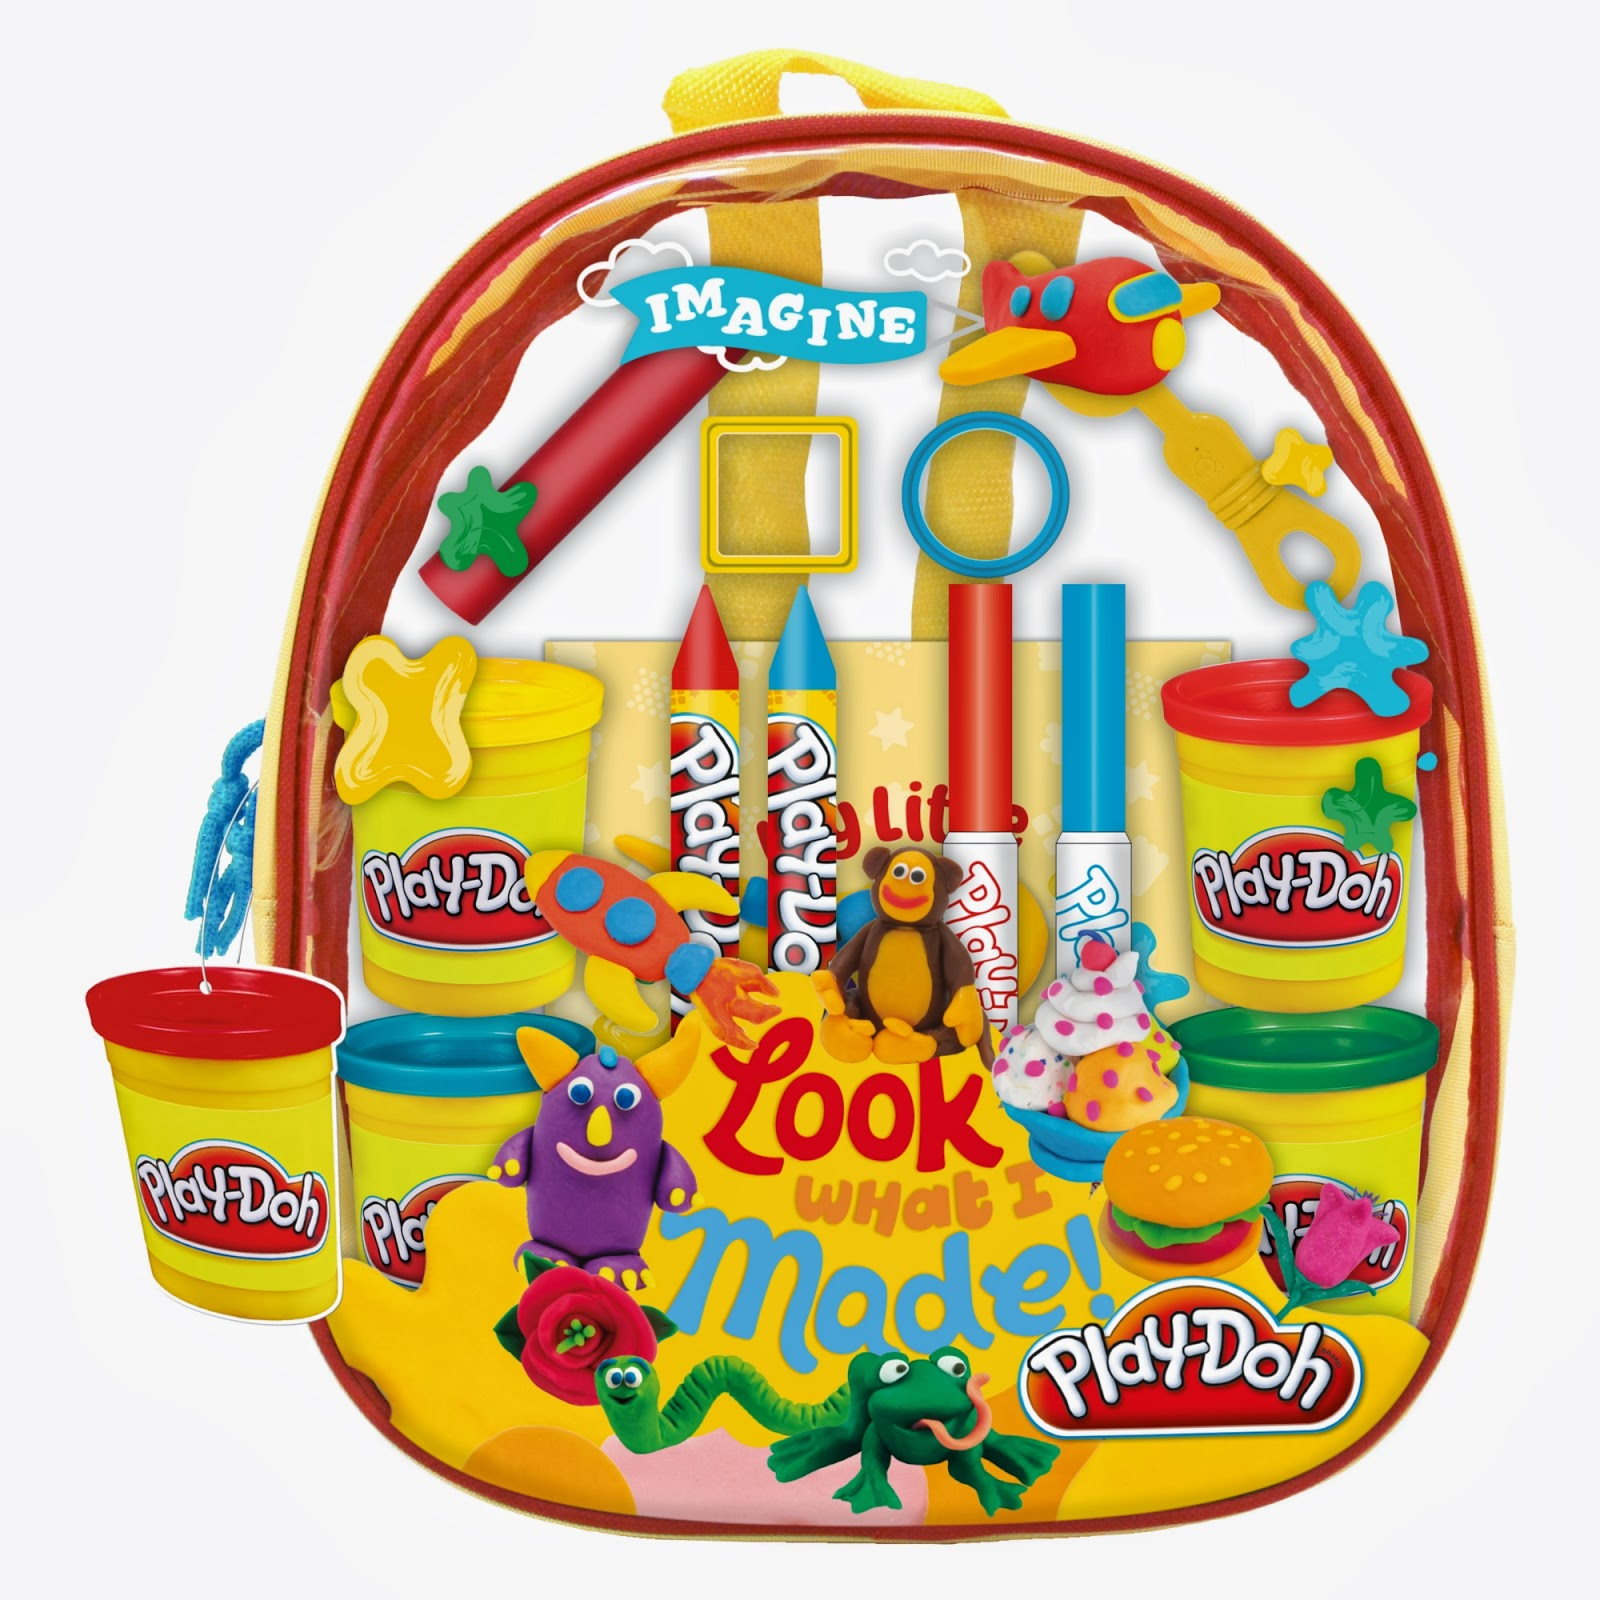 http://www.awin1.com/cread.php?awinmid=4160&awinaffid=179887&clickref=&p=http%3A%2F%2Fdirect.asda.com%2FPlay-Doh-Back-Pack%2F000734842%2Cdefault%2Cpd.html